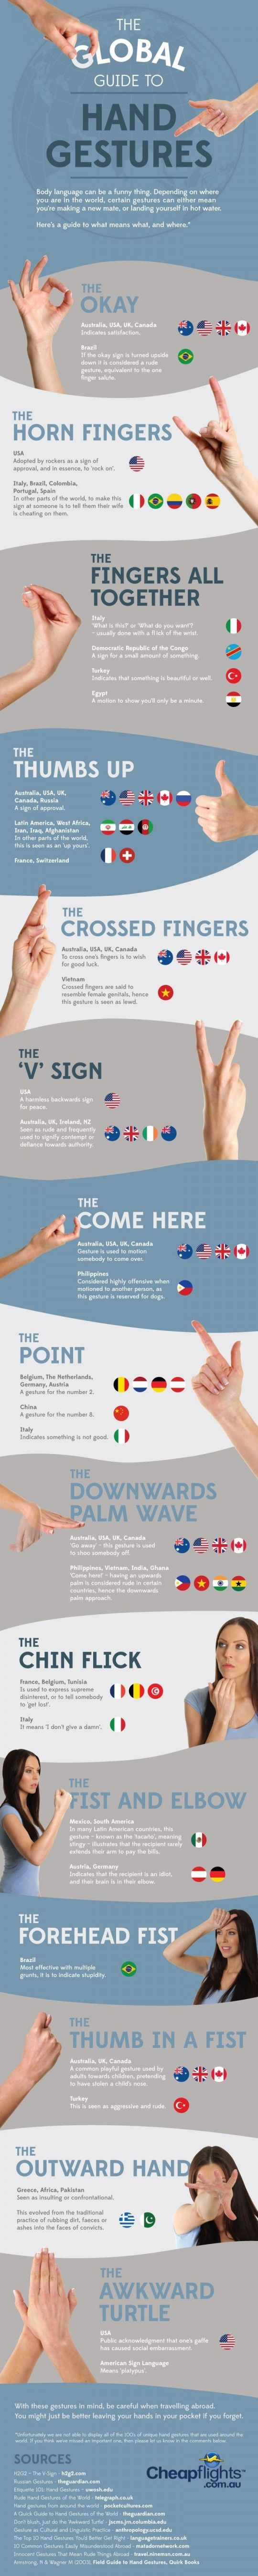 """Infographic: """"The Global Guide to Hand Gestures""""--the fingers all together really takes me back to Egypt!"""